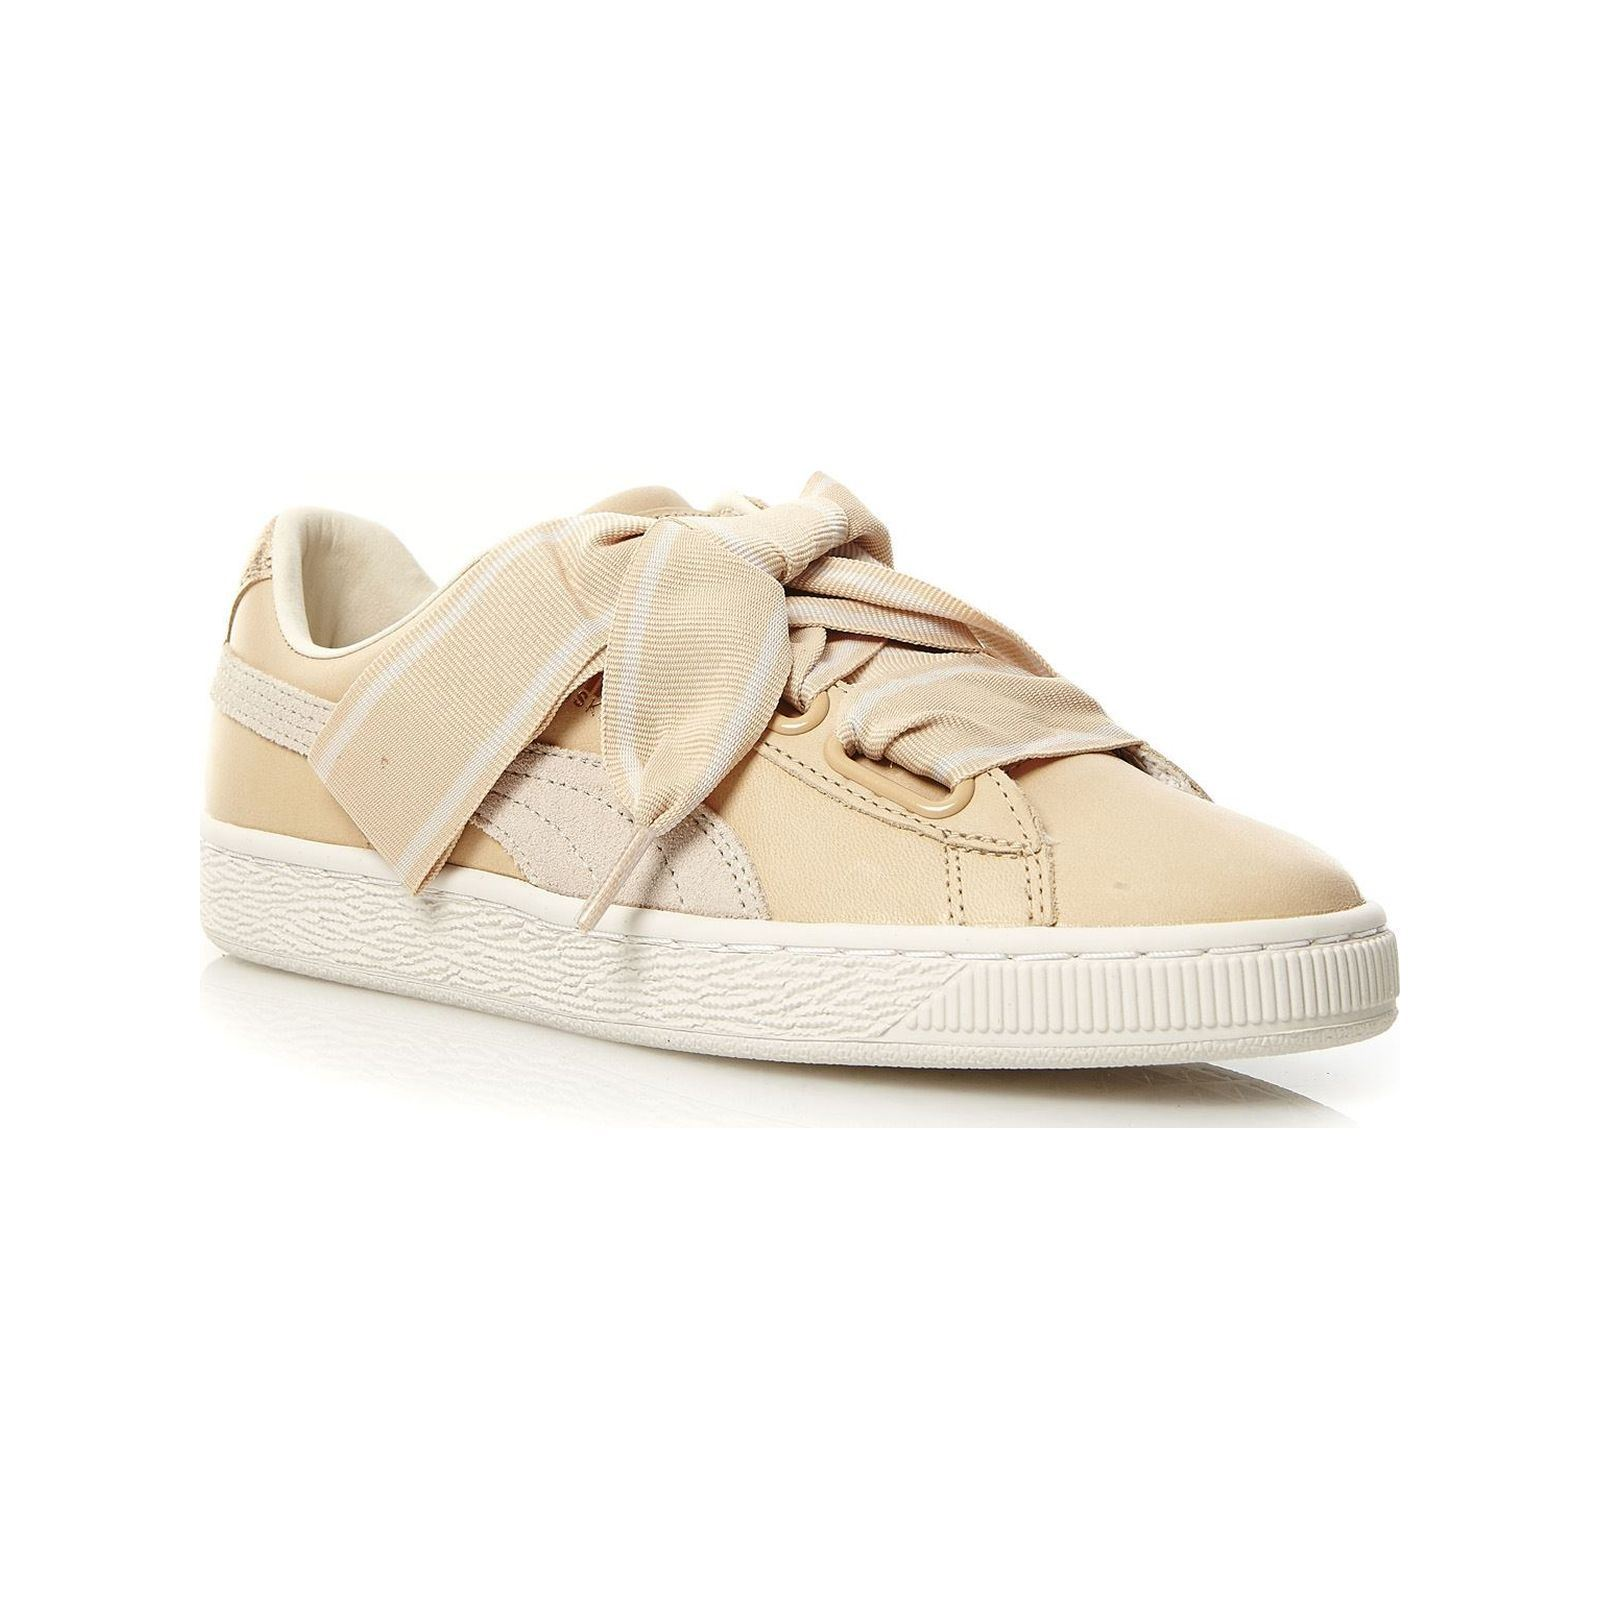 Puma Sneakers in pelle beige